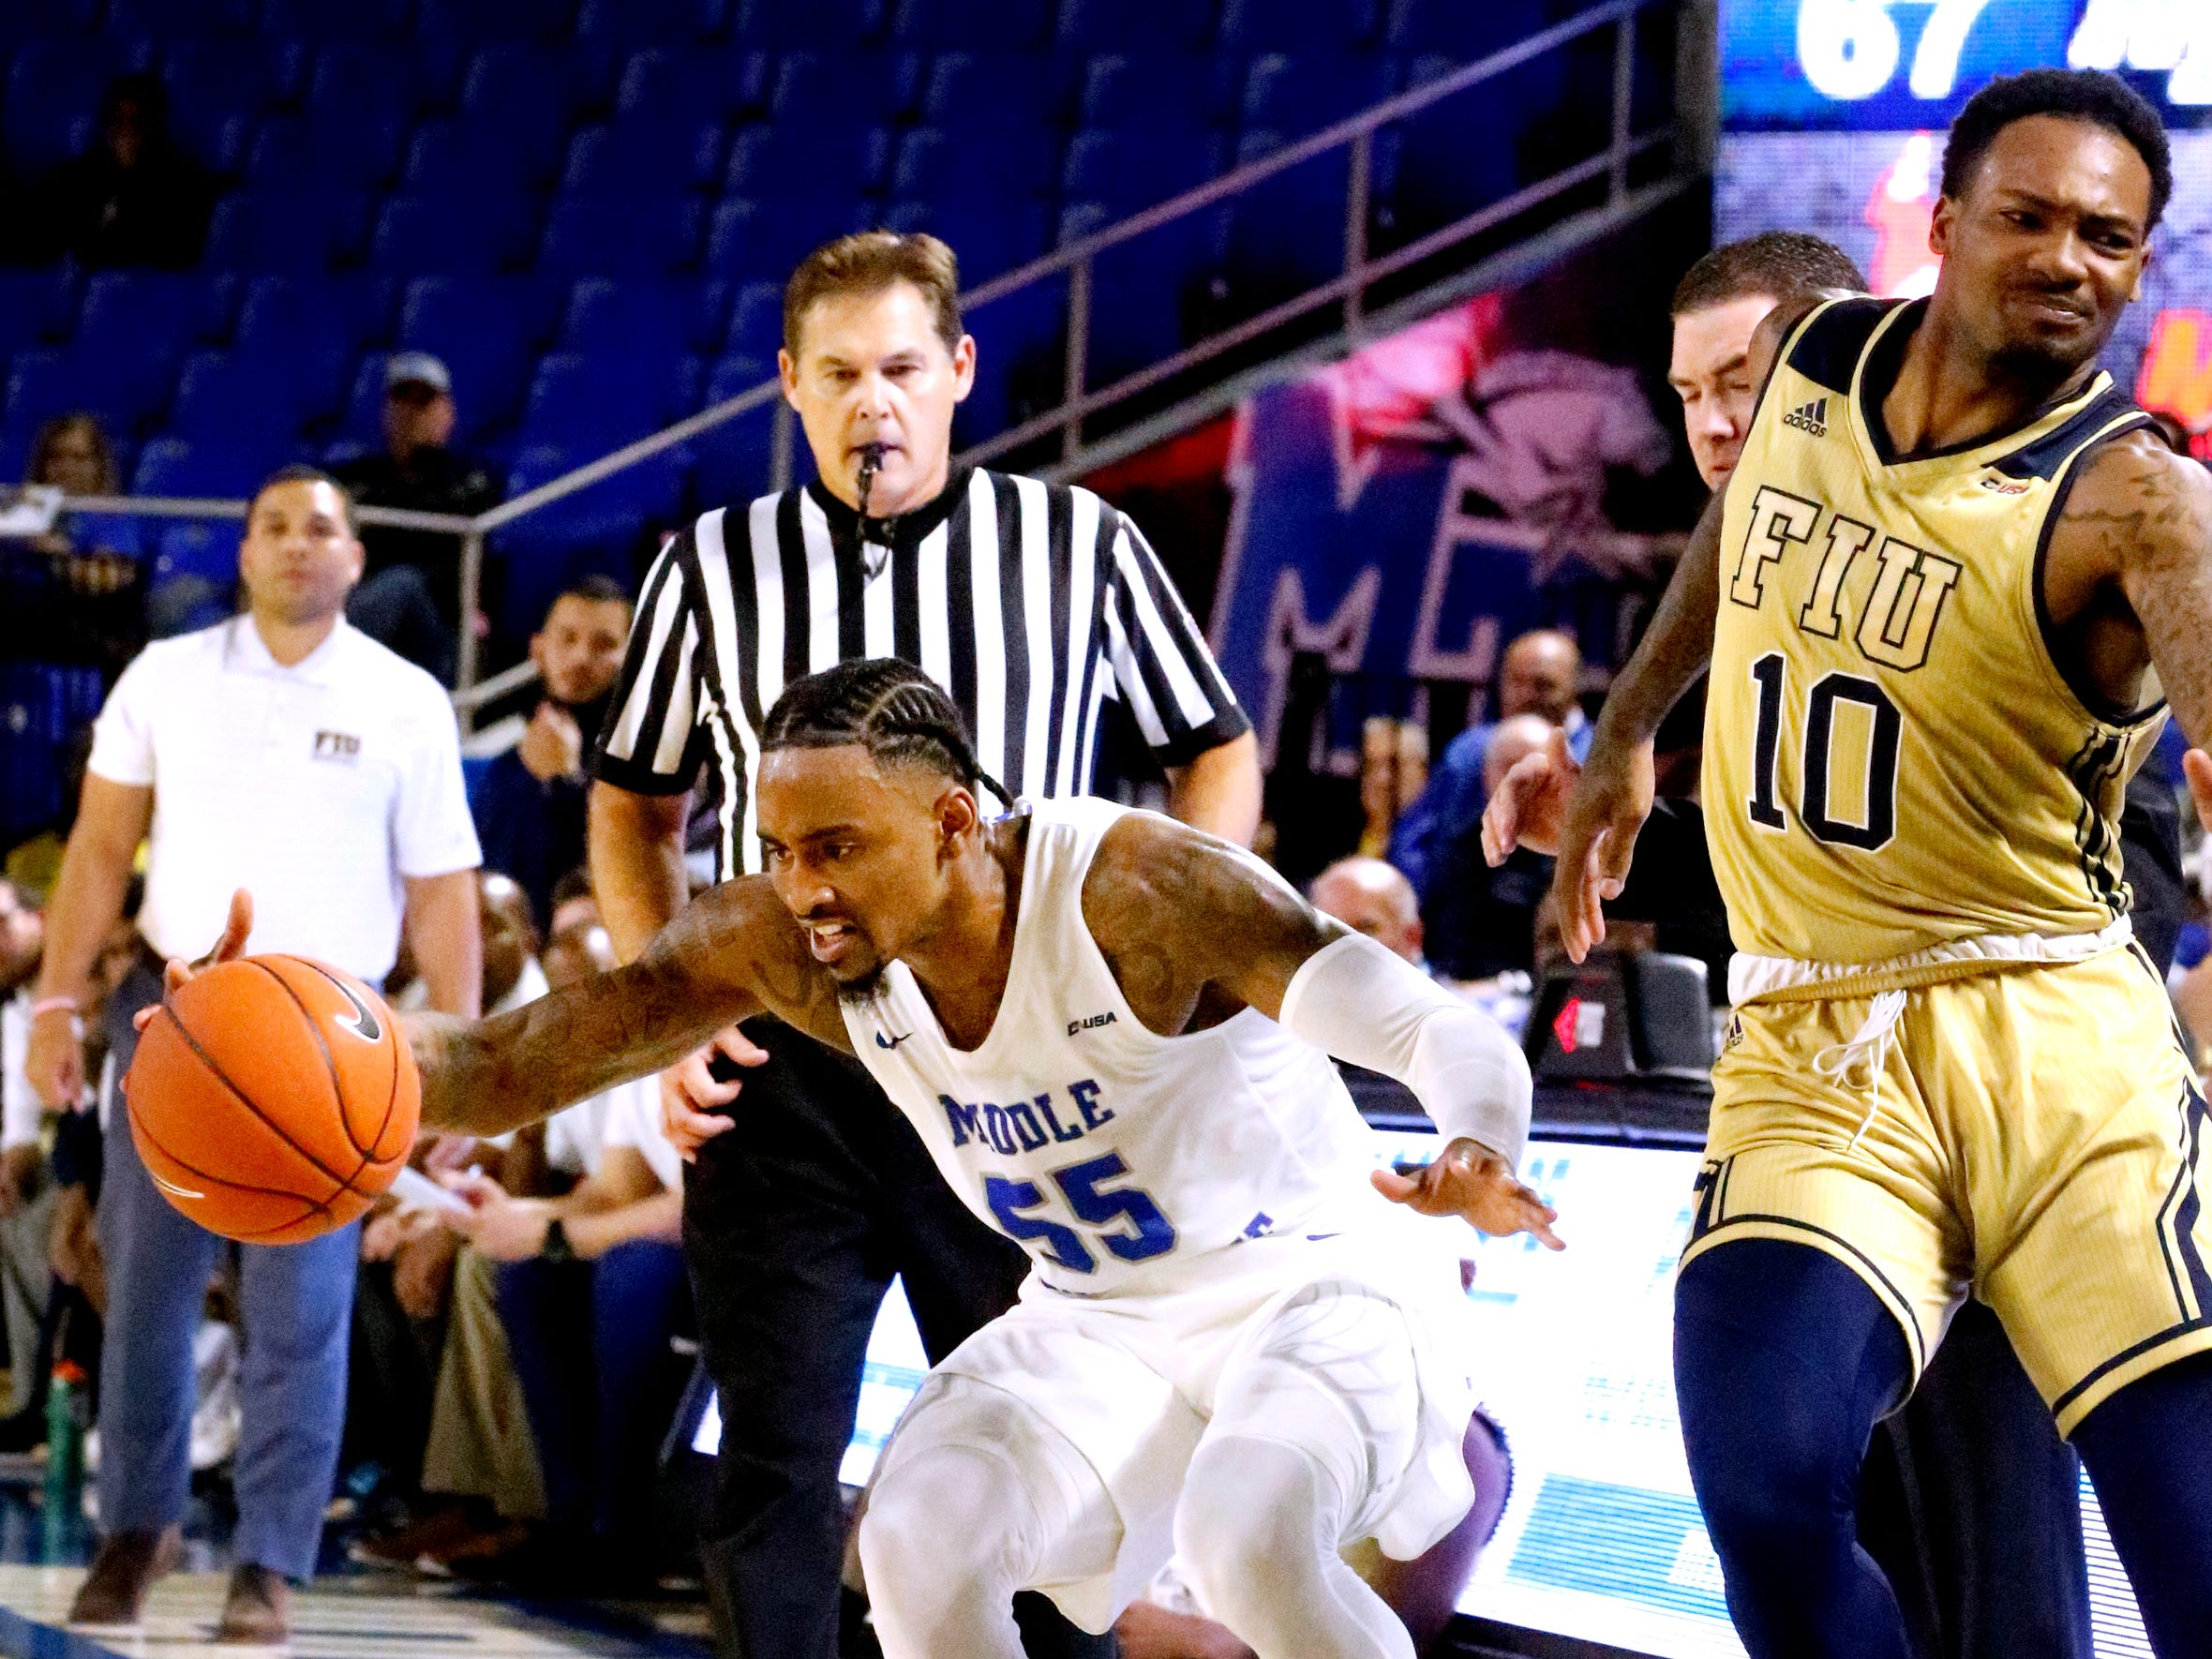 MTSU's guard Antonio Green (55) tries to stay in bounds as FIU's forward Devon Andrews (10) falls out of bounds on Thursday Jan. 3, 2019, at MTSU.